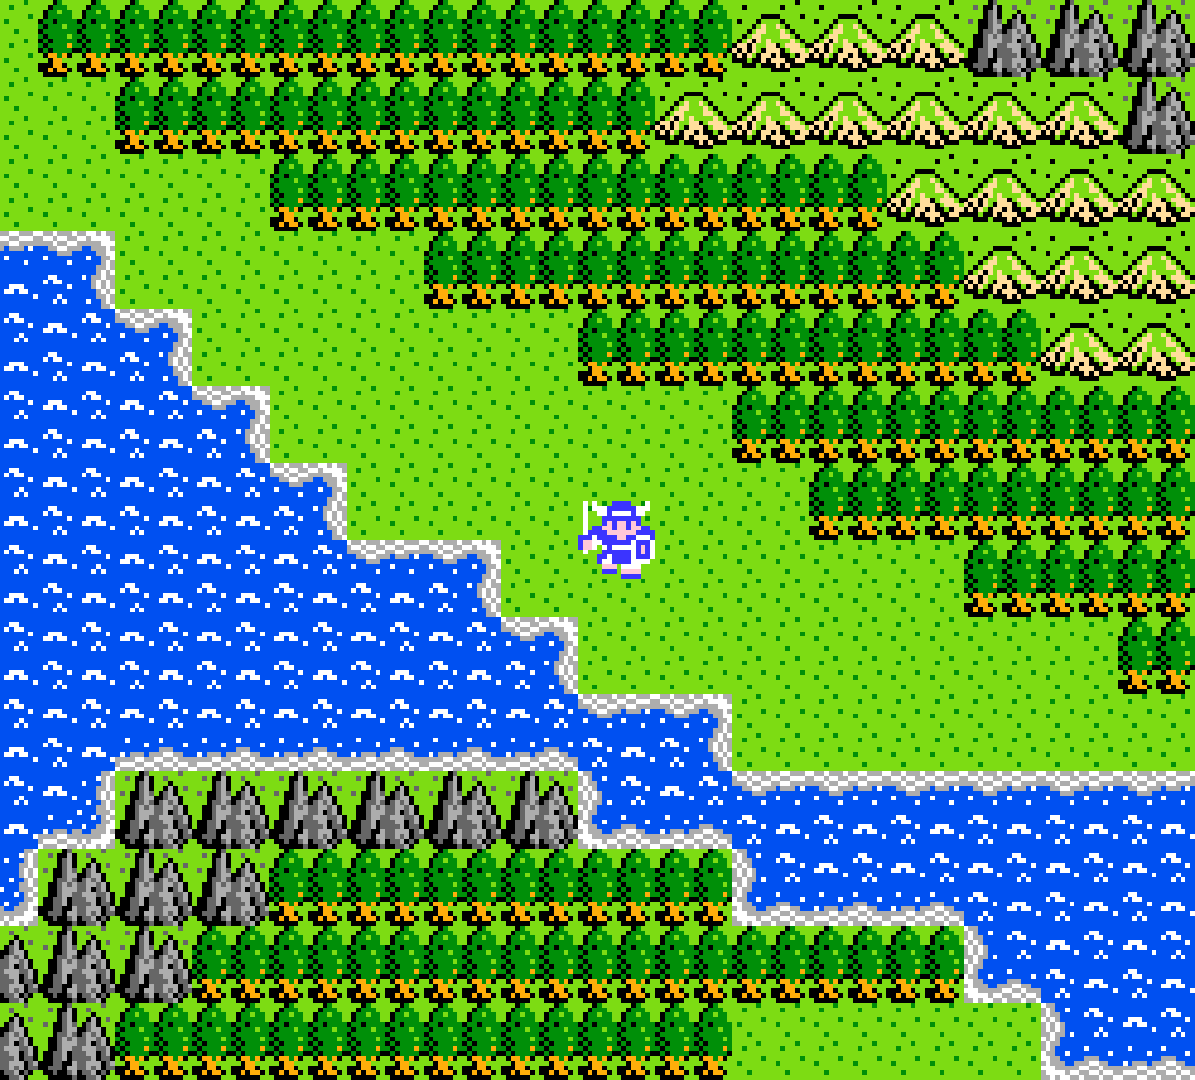 Exploring the colorful realm of Alefgard.